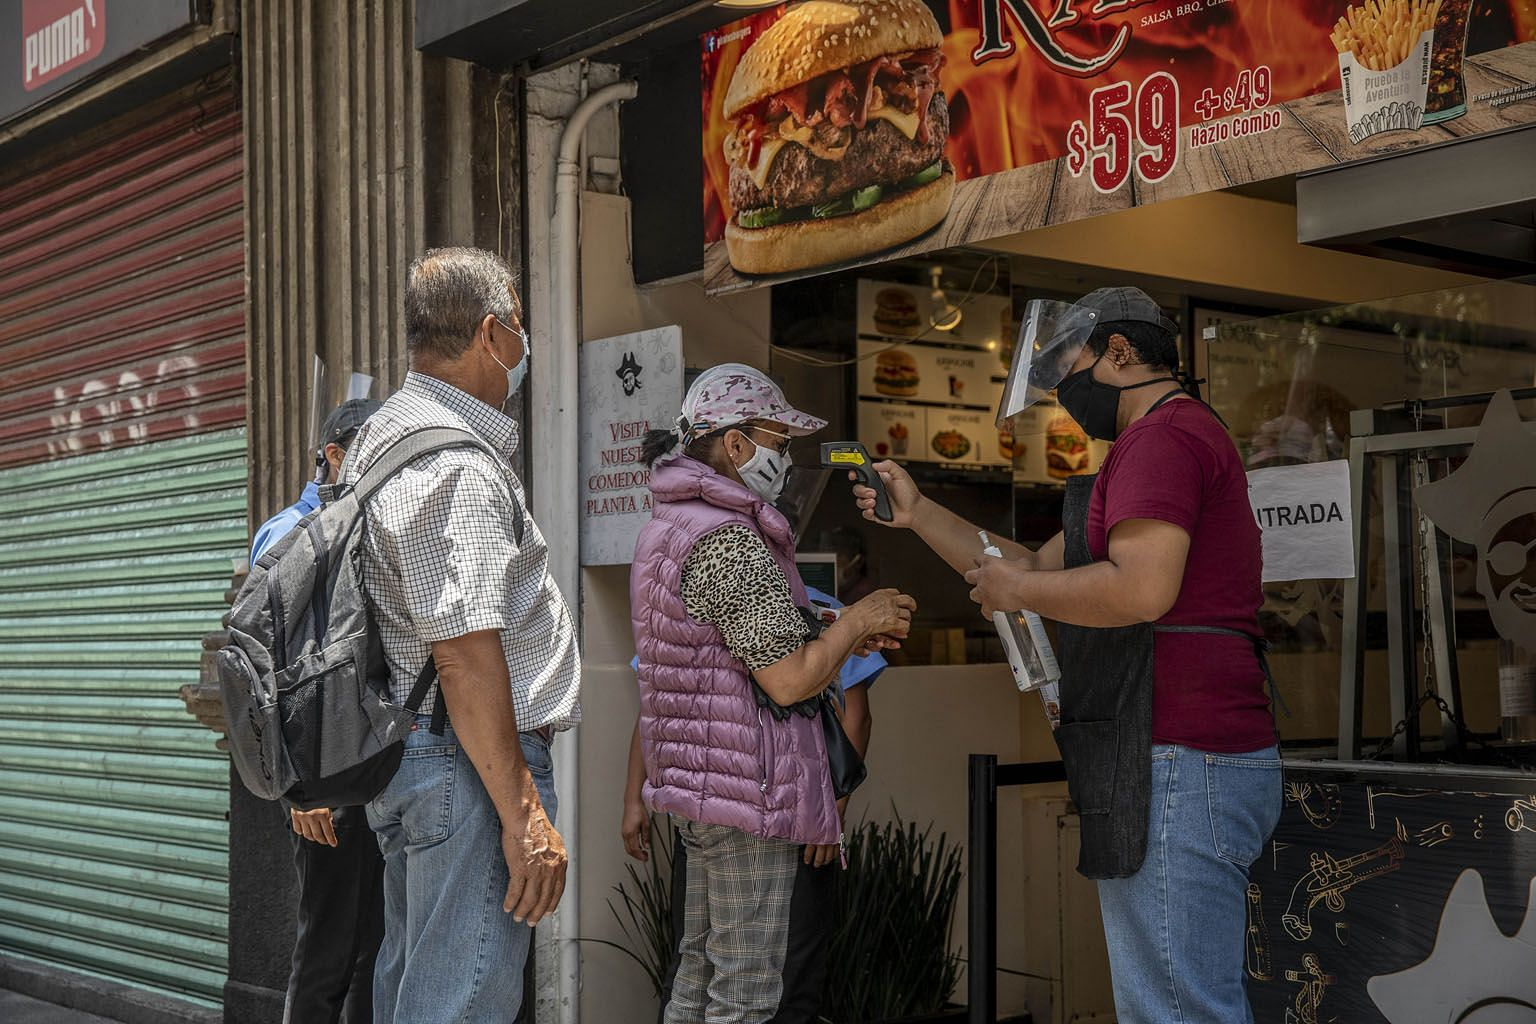 Customers outside a restaurant in Mexico City on Wednesday. The capital of Mexico began reopening businesses this week.